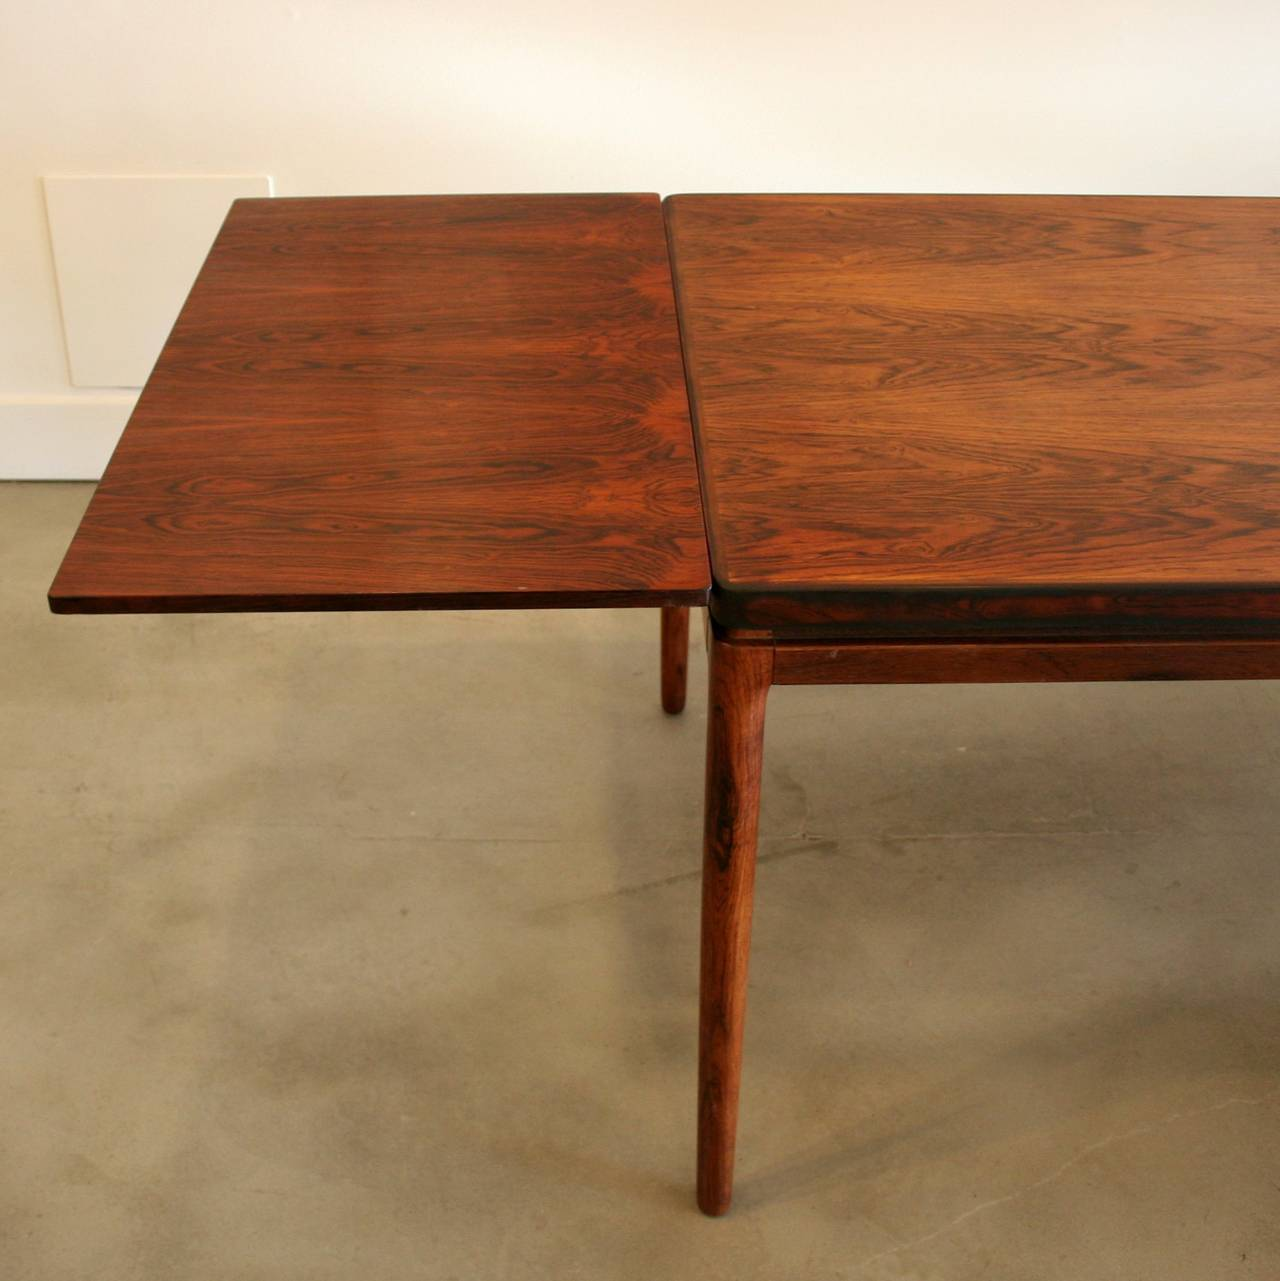 this vintage danish rosewood dining table with two leaves is no